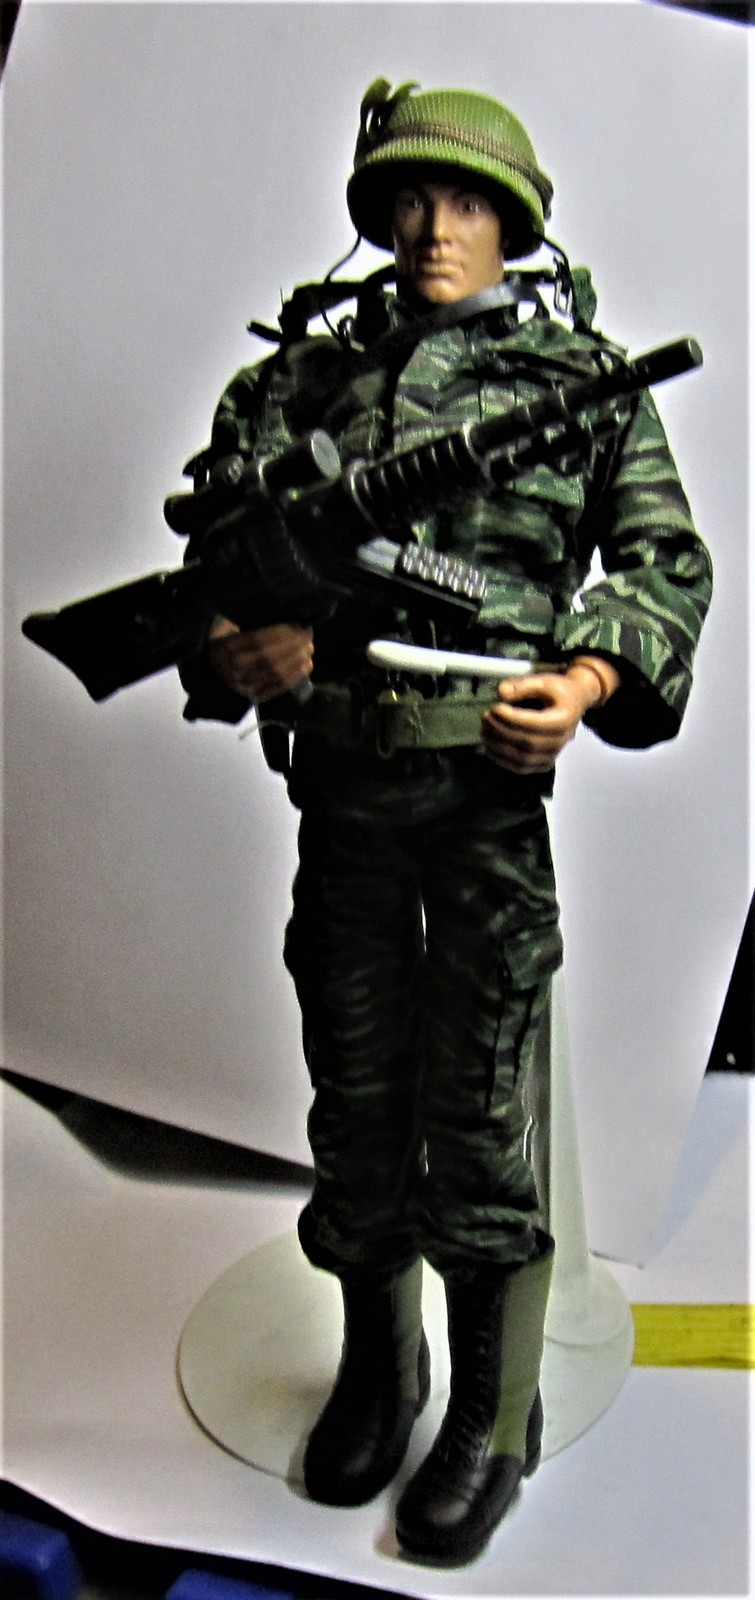 Primary image for G. I. Joe Soldier (12 Inch. Tall)